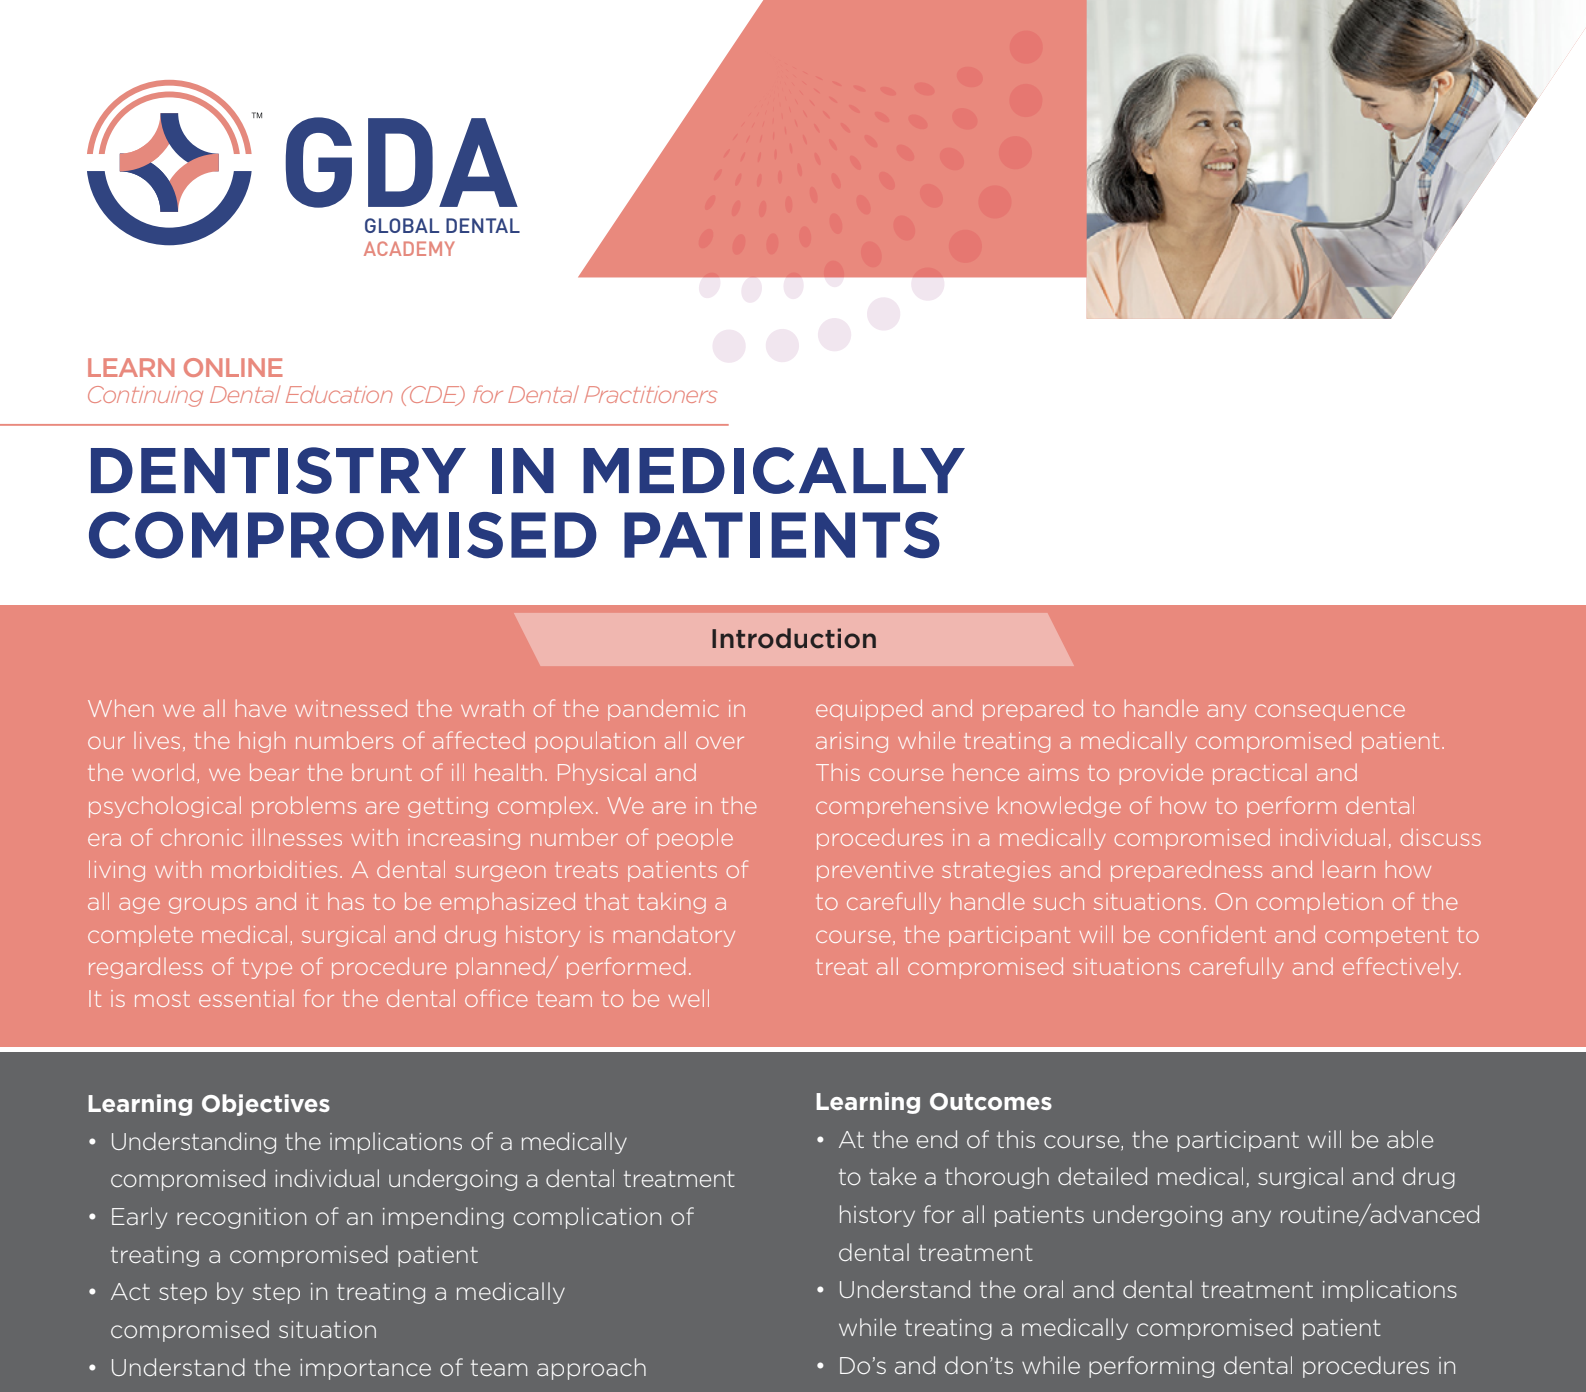 Dentistry in Medically Compromised Patients by Global Dental Academy